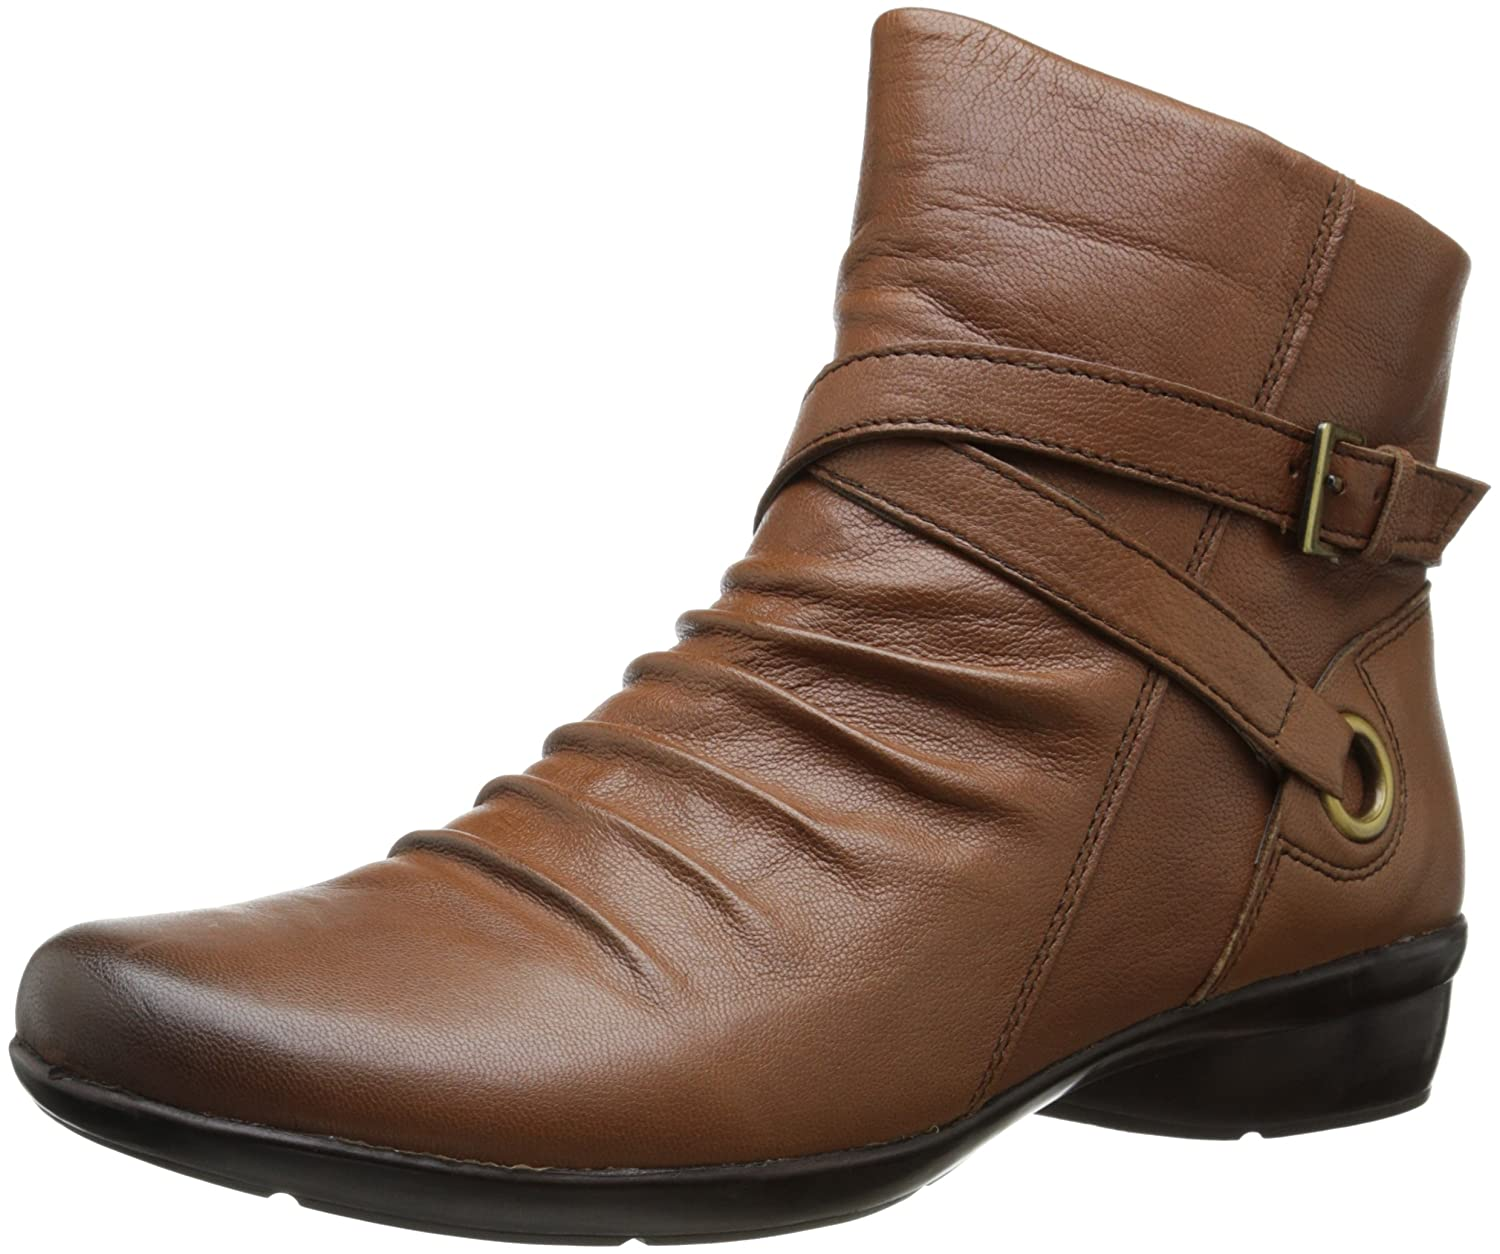 Naturalizer Women's Cycle Boot B00J07S9KW 8.5 B(M) US|Bridal Brown